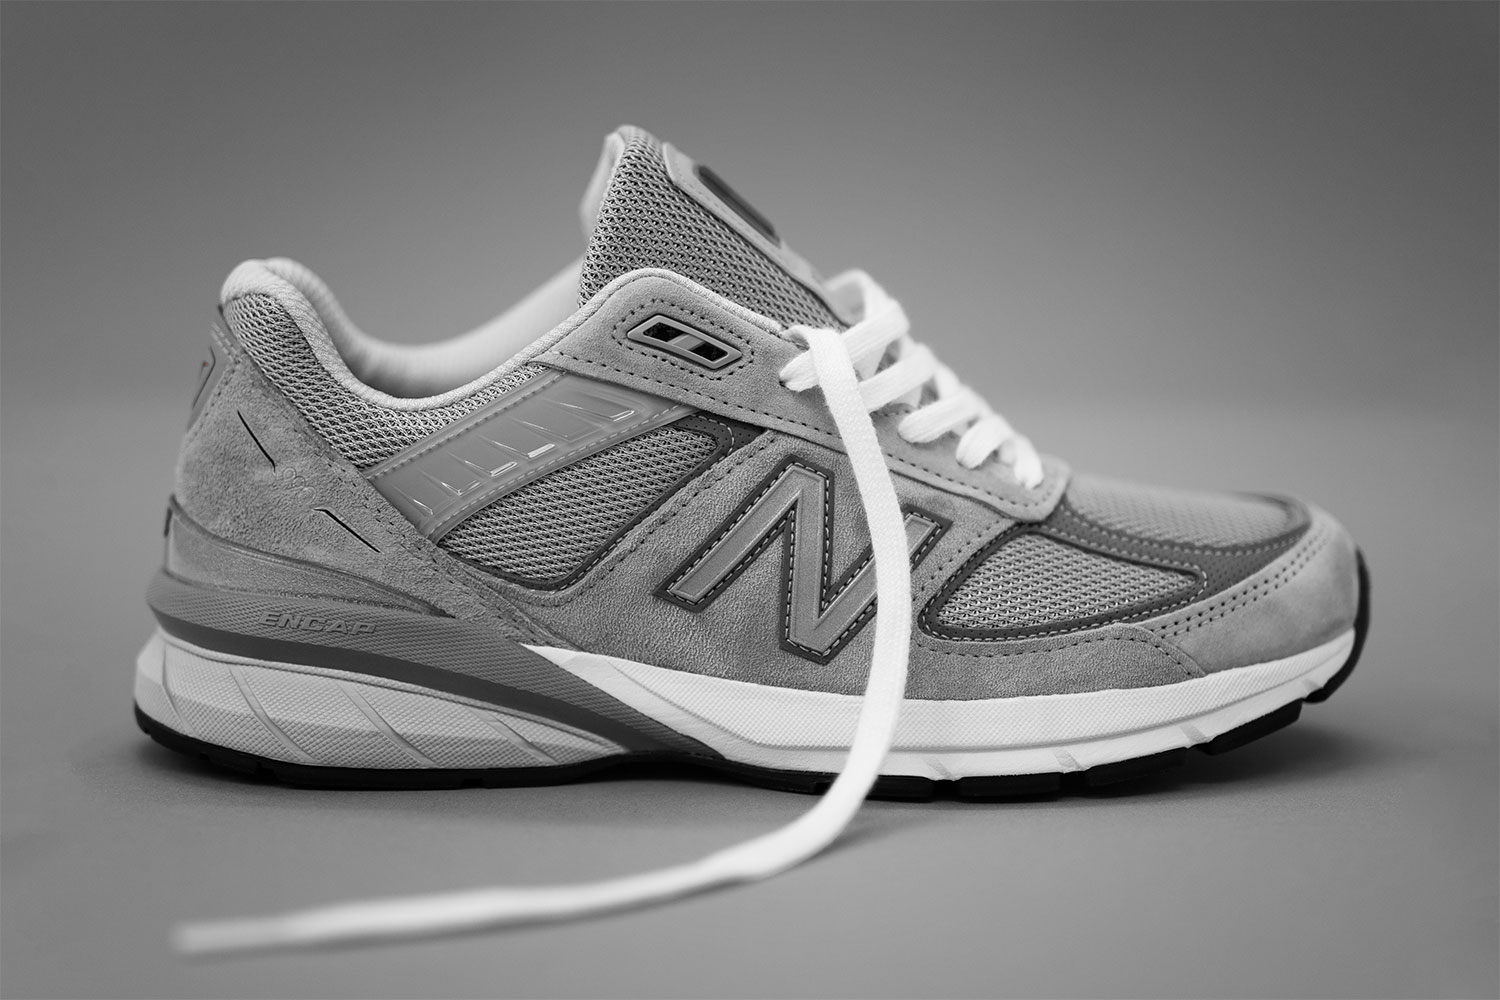 release date 22e09 bbb5a New Balance M990v5